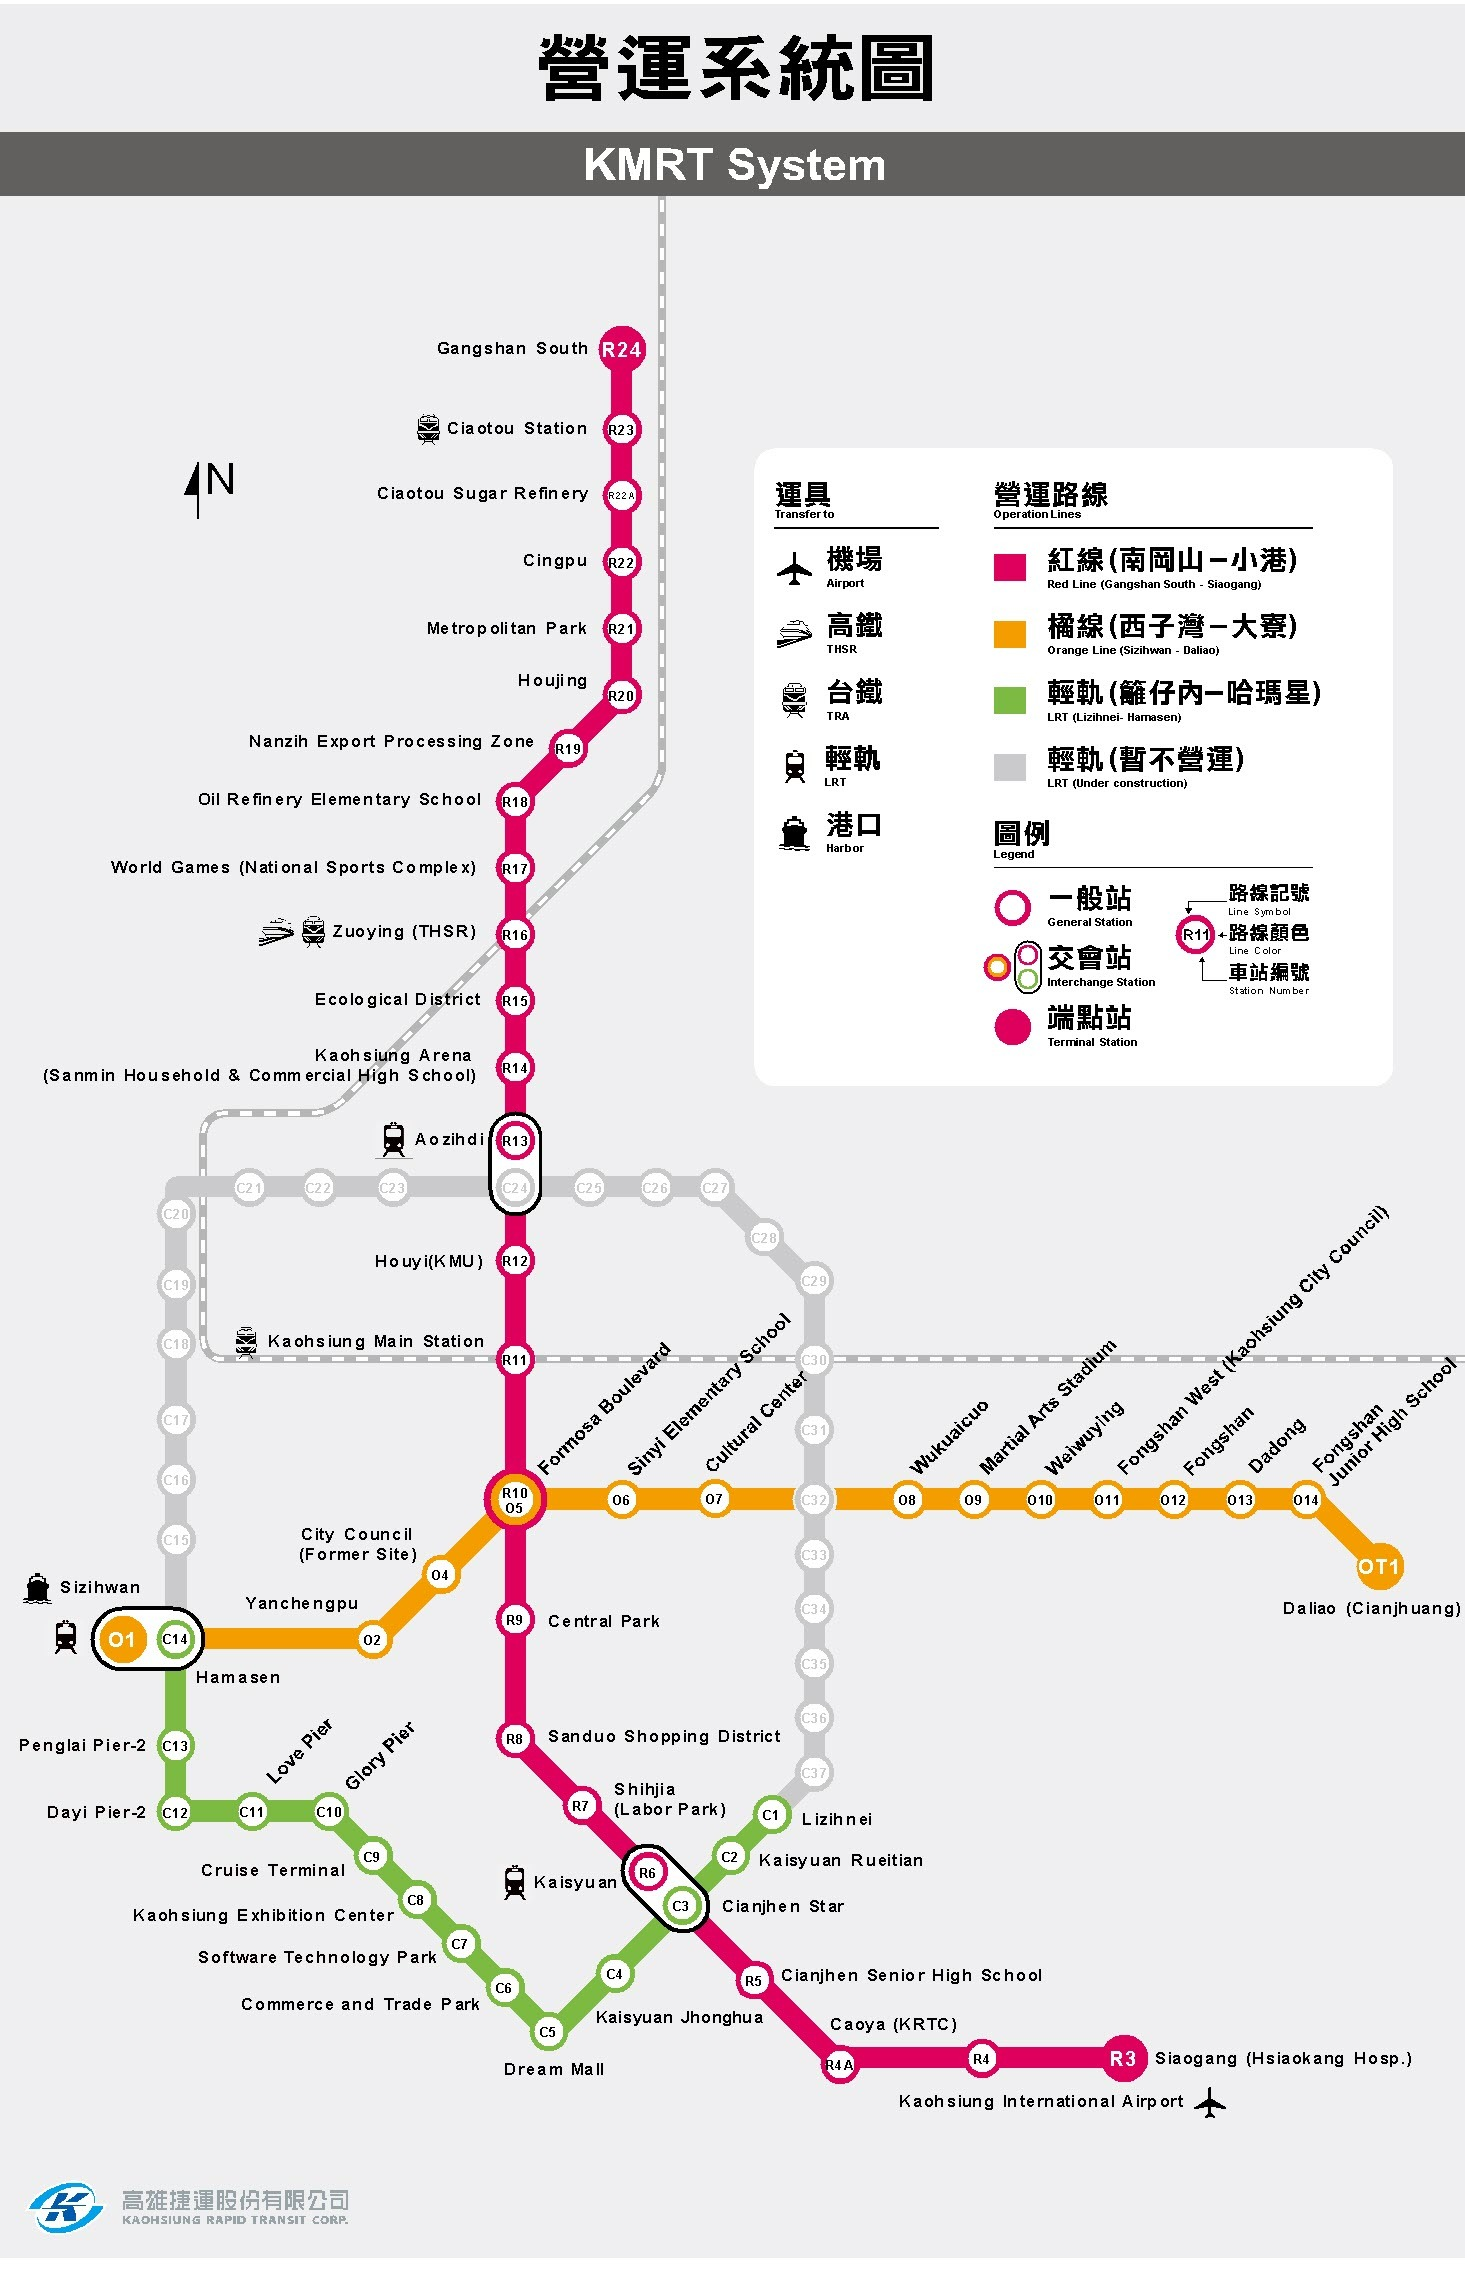 KMRT System-Take the shuttle bus to the university after arriving at Siaogang Station